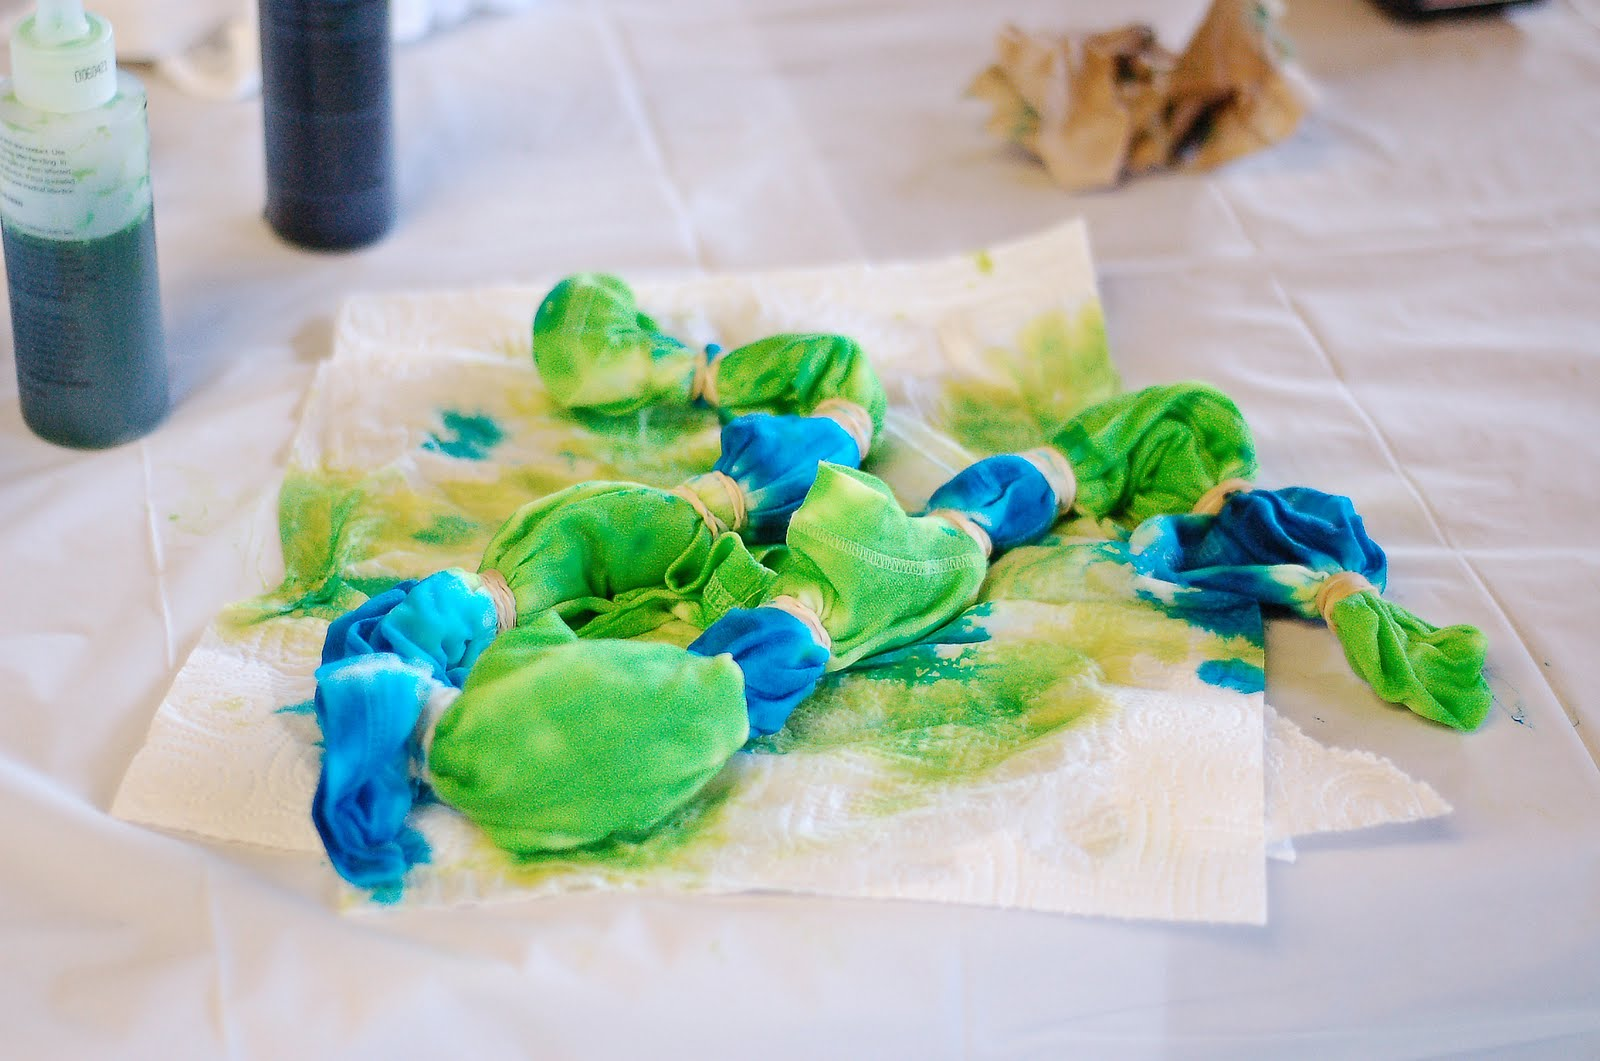 Frankly Speaking Too: iLoveToCreate: Tie-Dye techniques class